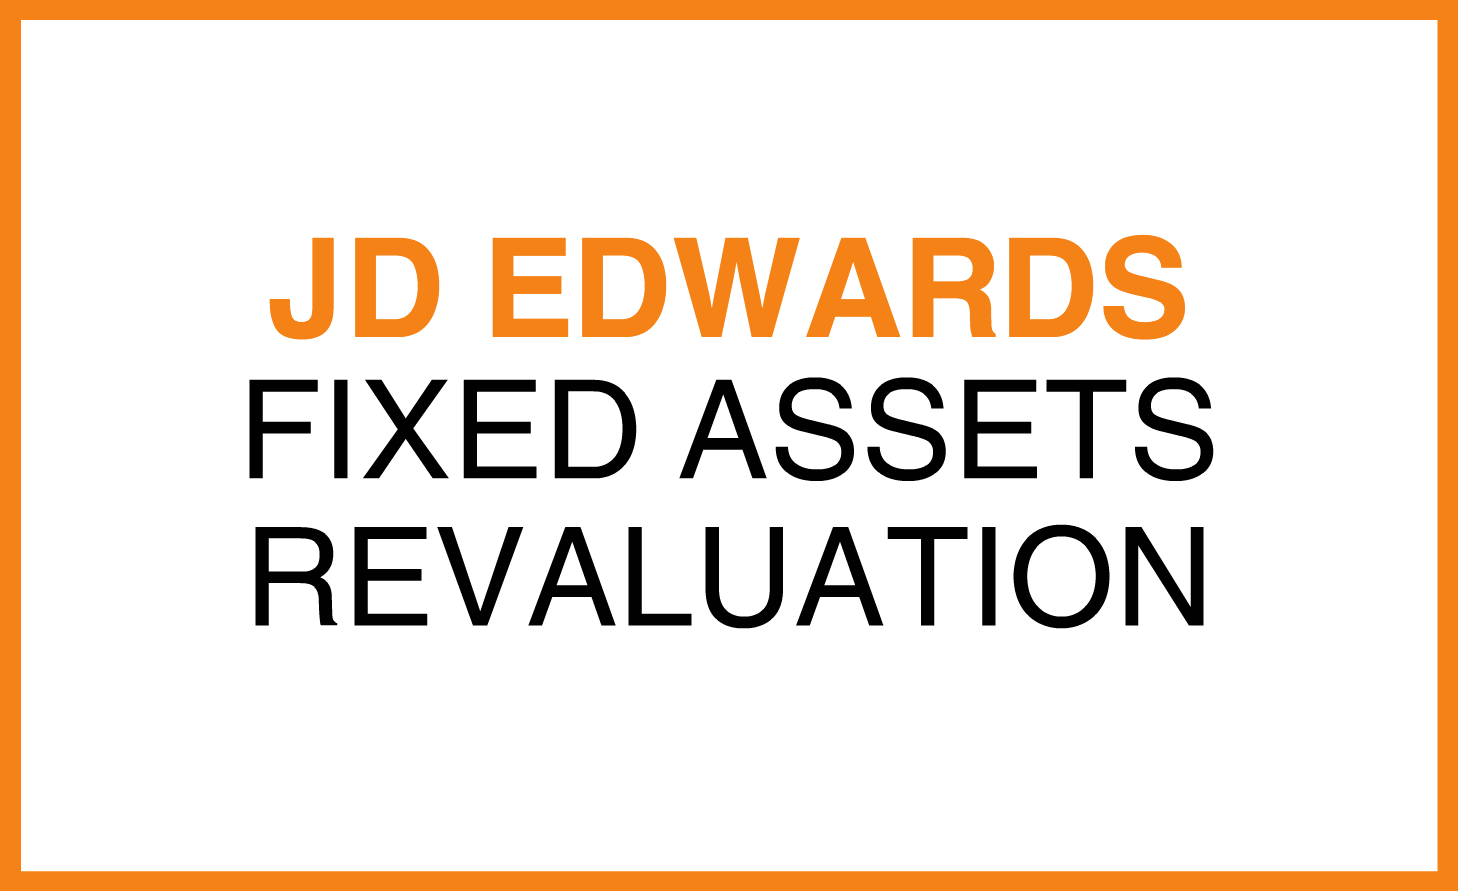 fixed_assets_revaluation.png